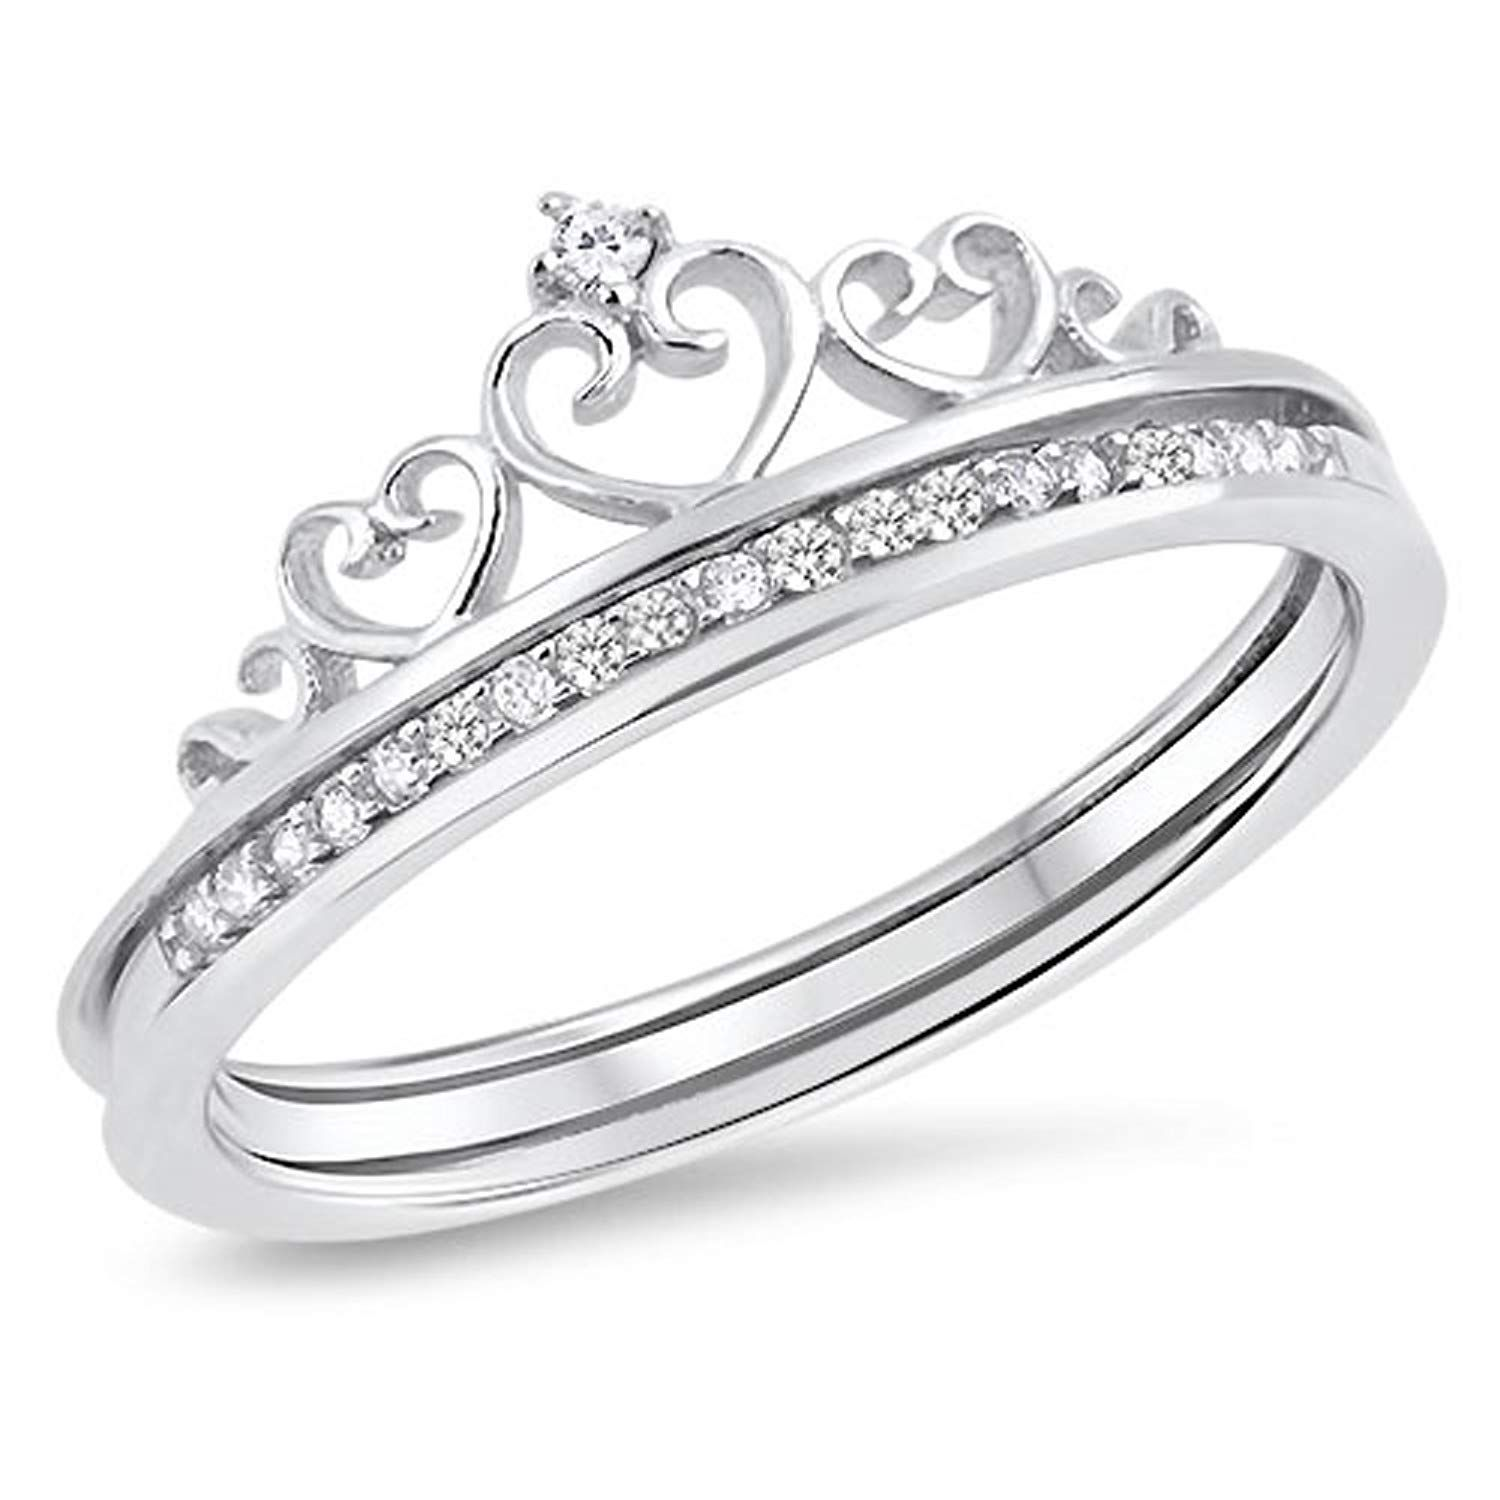 Heart Crown Clear CZ Promise Ring Set New .925 Sterling